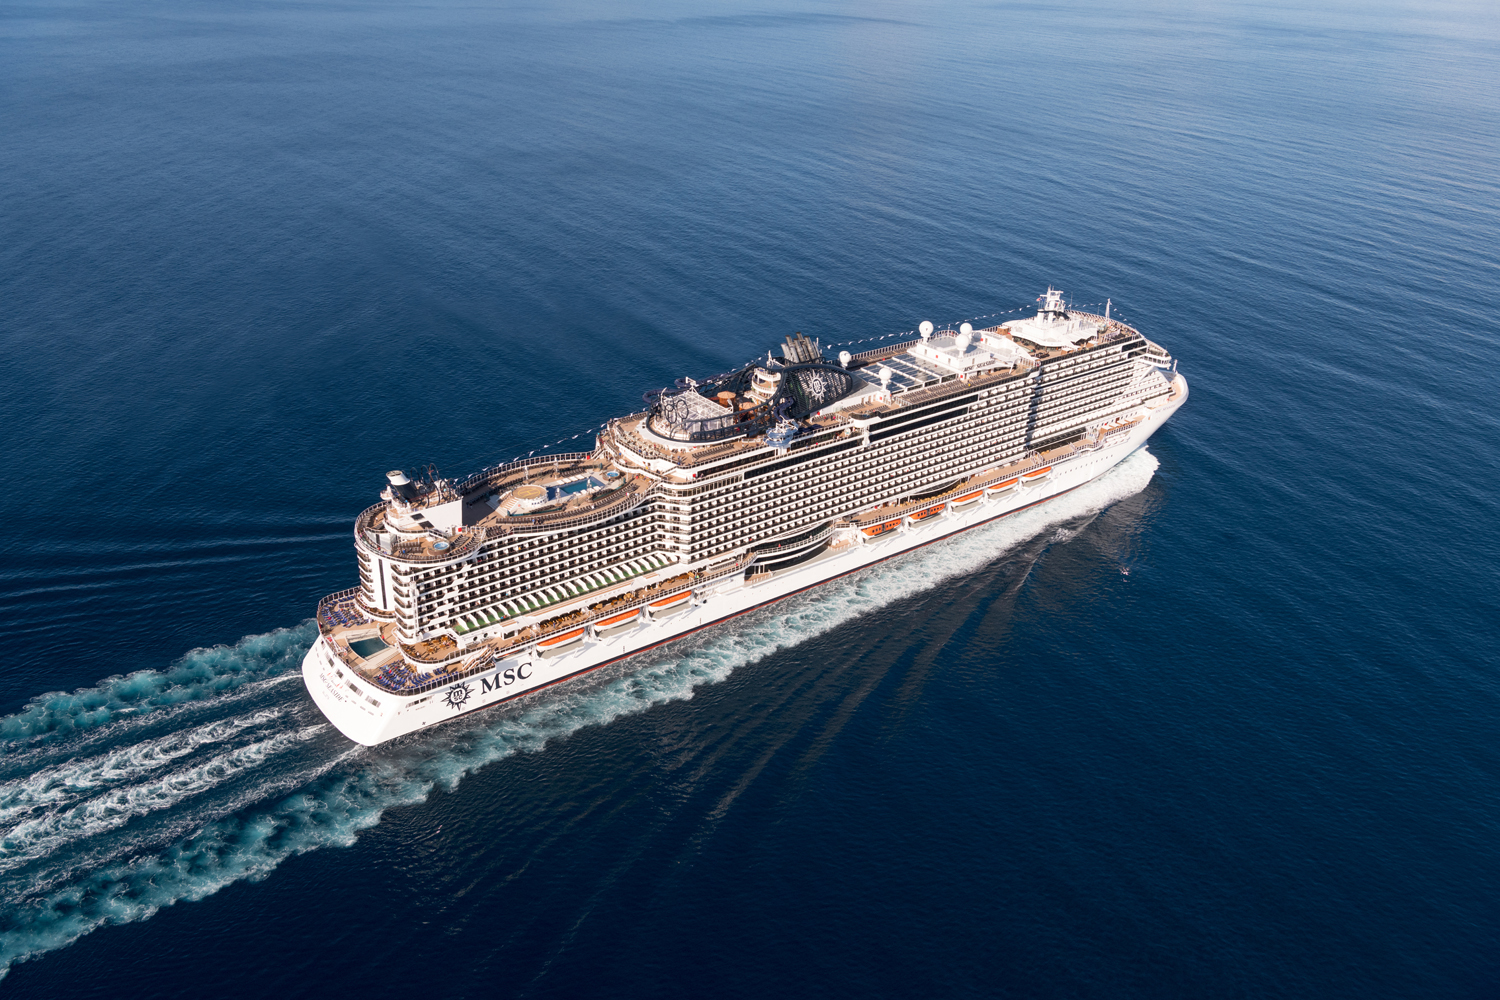 MSC Seaside at sea.